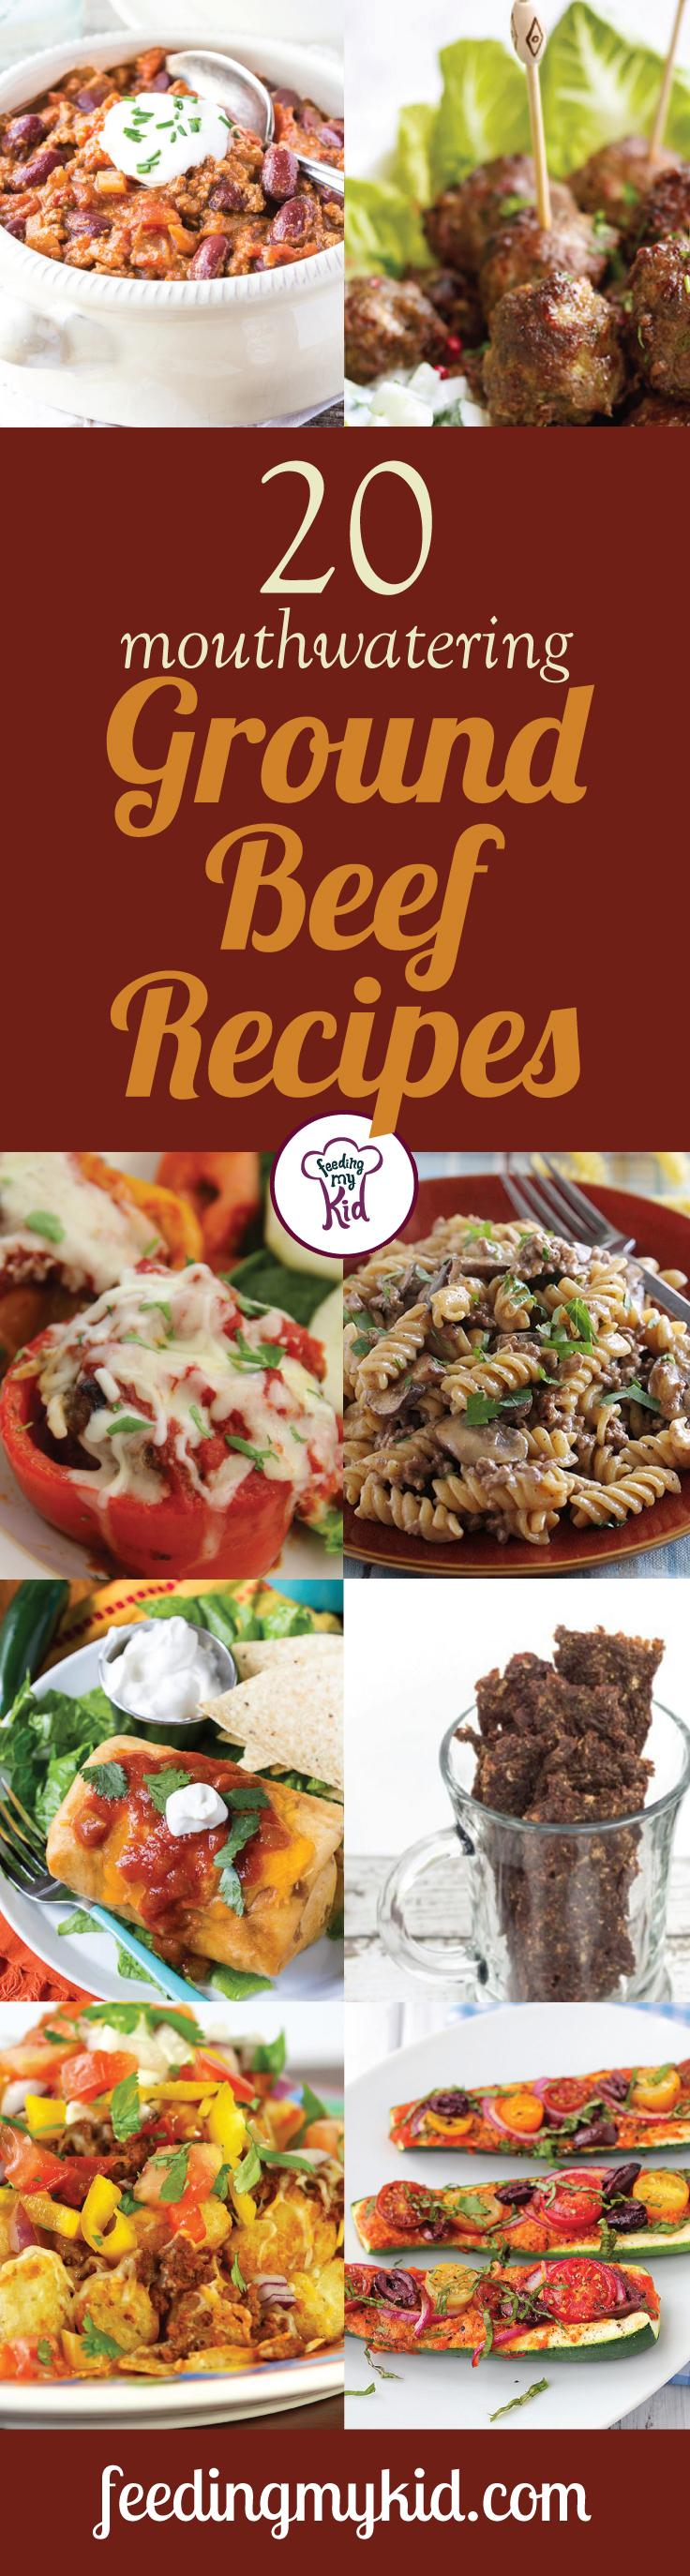 20 Mouthwatering Ground Beef Recipes - Beef can have many healthful benefits. It's high in iron, rich in protein and can be very filling. There are many different ways you can cook up beef; there are tons of ground beef recipes to pick from. That's why we put together this list of recipes just for you. From sweet potato ground beef pie to bakes cilantro meatballs; these recipes are sure to please even the pickiest of eaters.